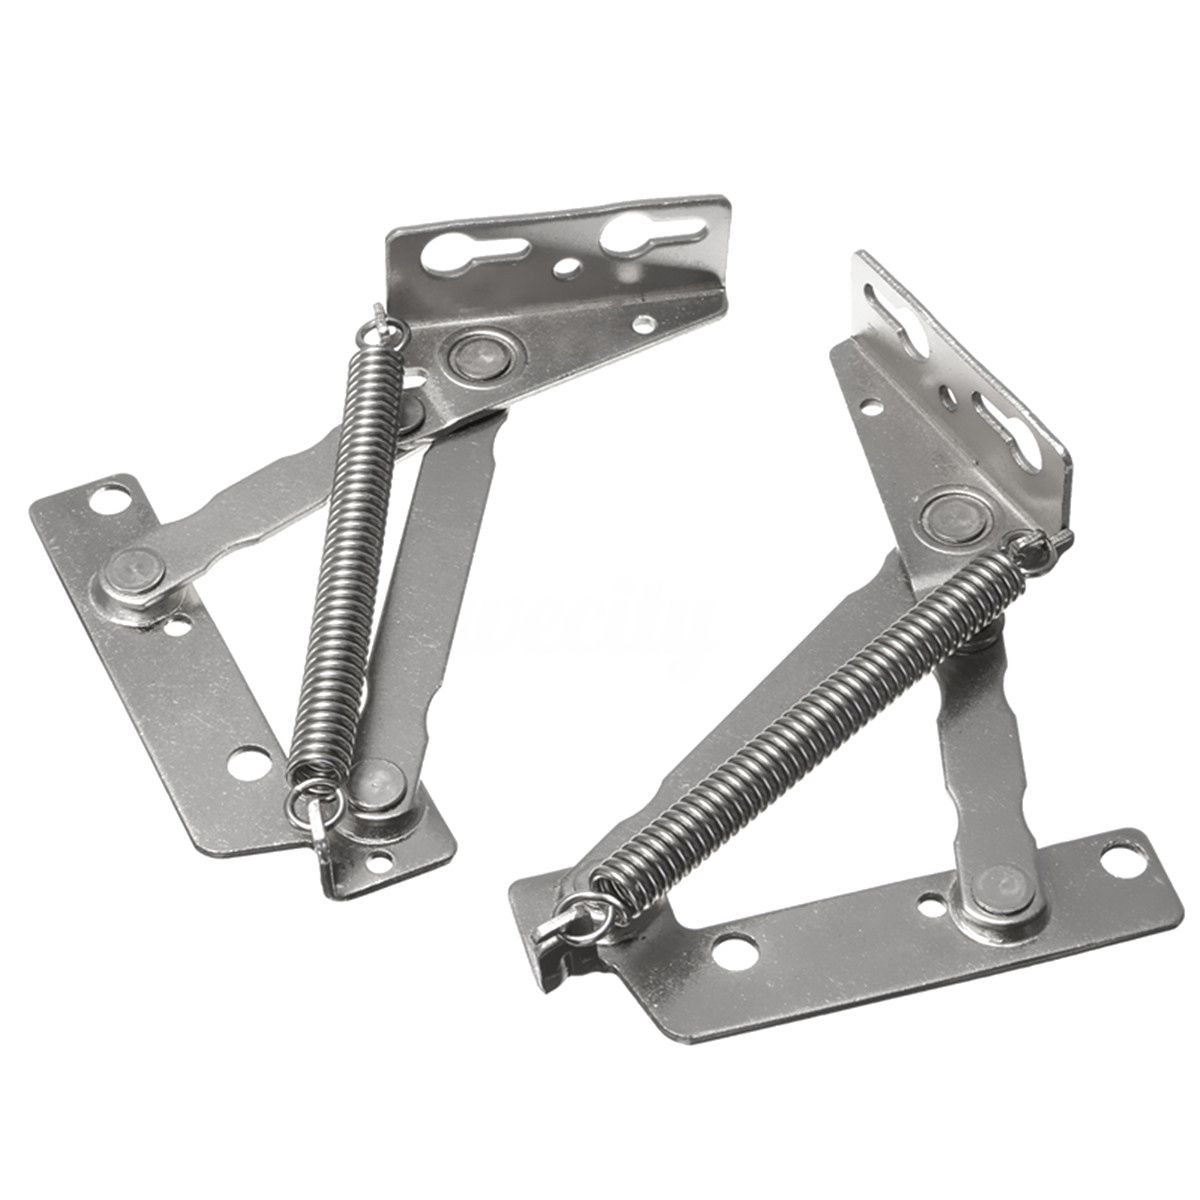 2x 80 Degree Sprung Hinges Cabinet Door Lift Up Stay Flap Top